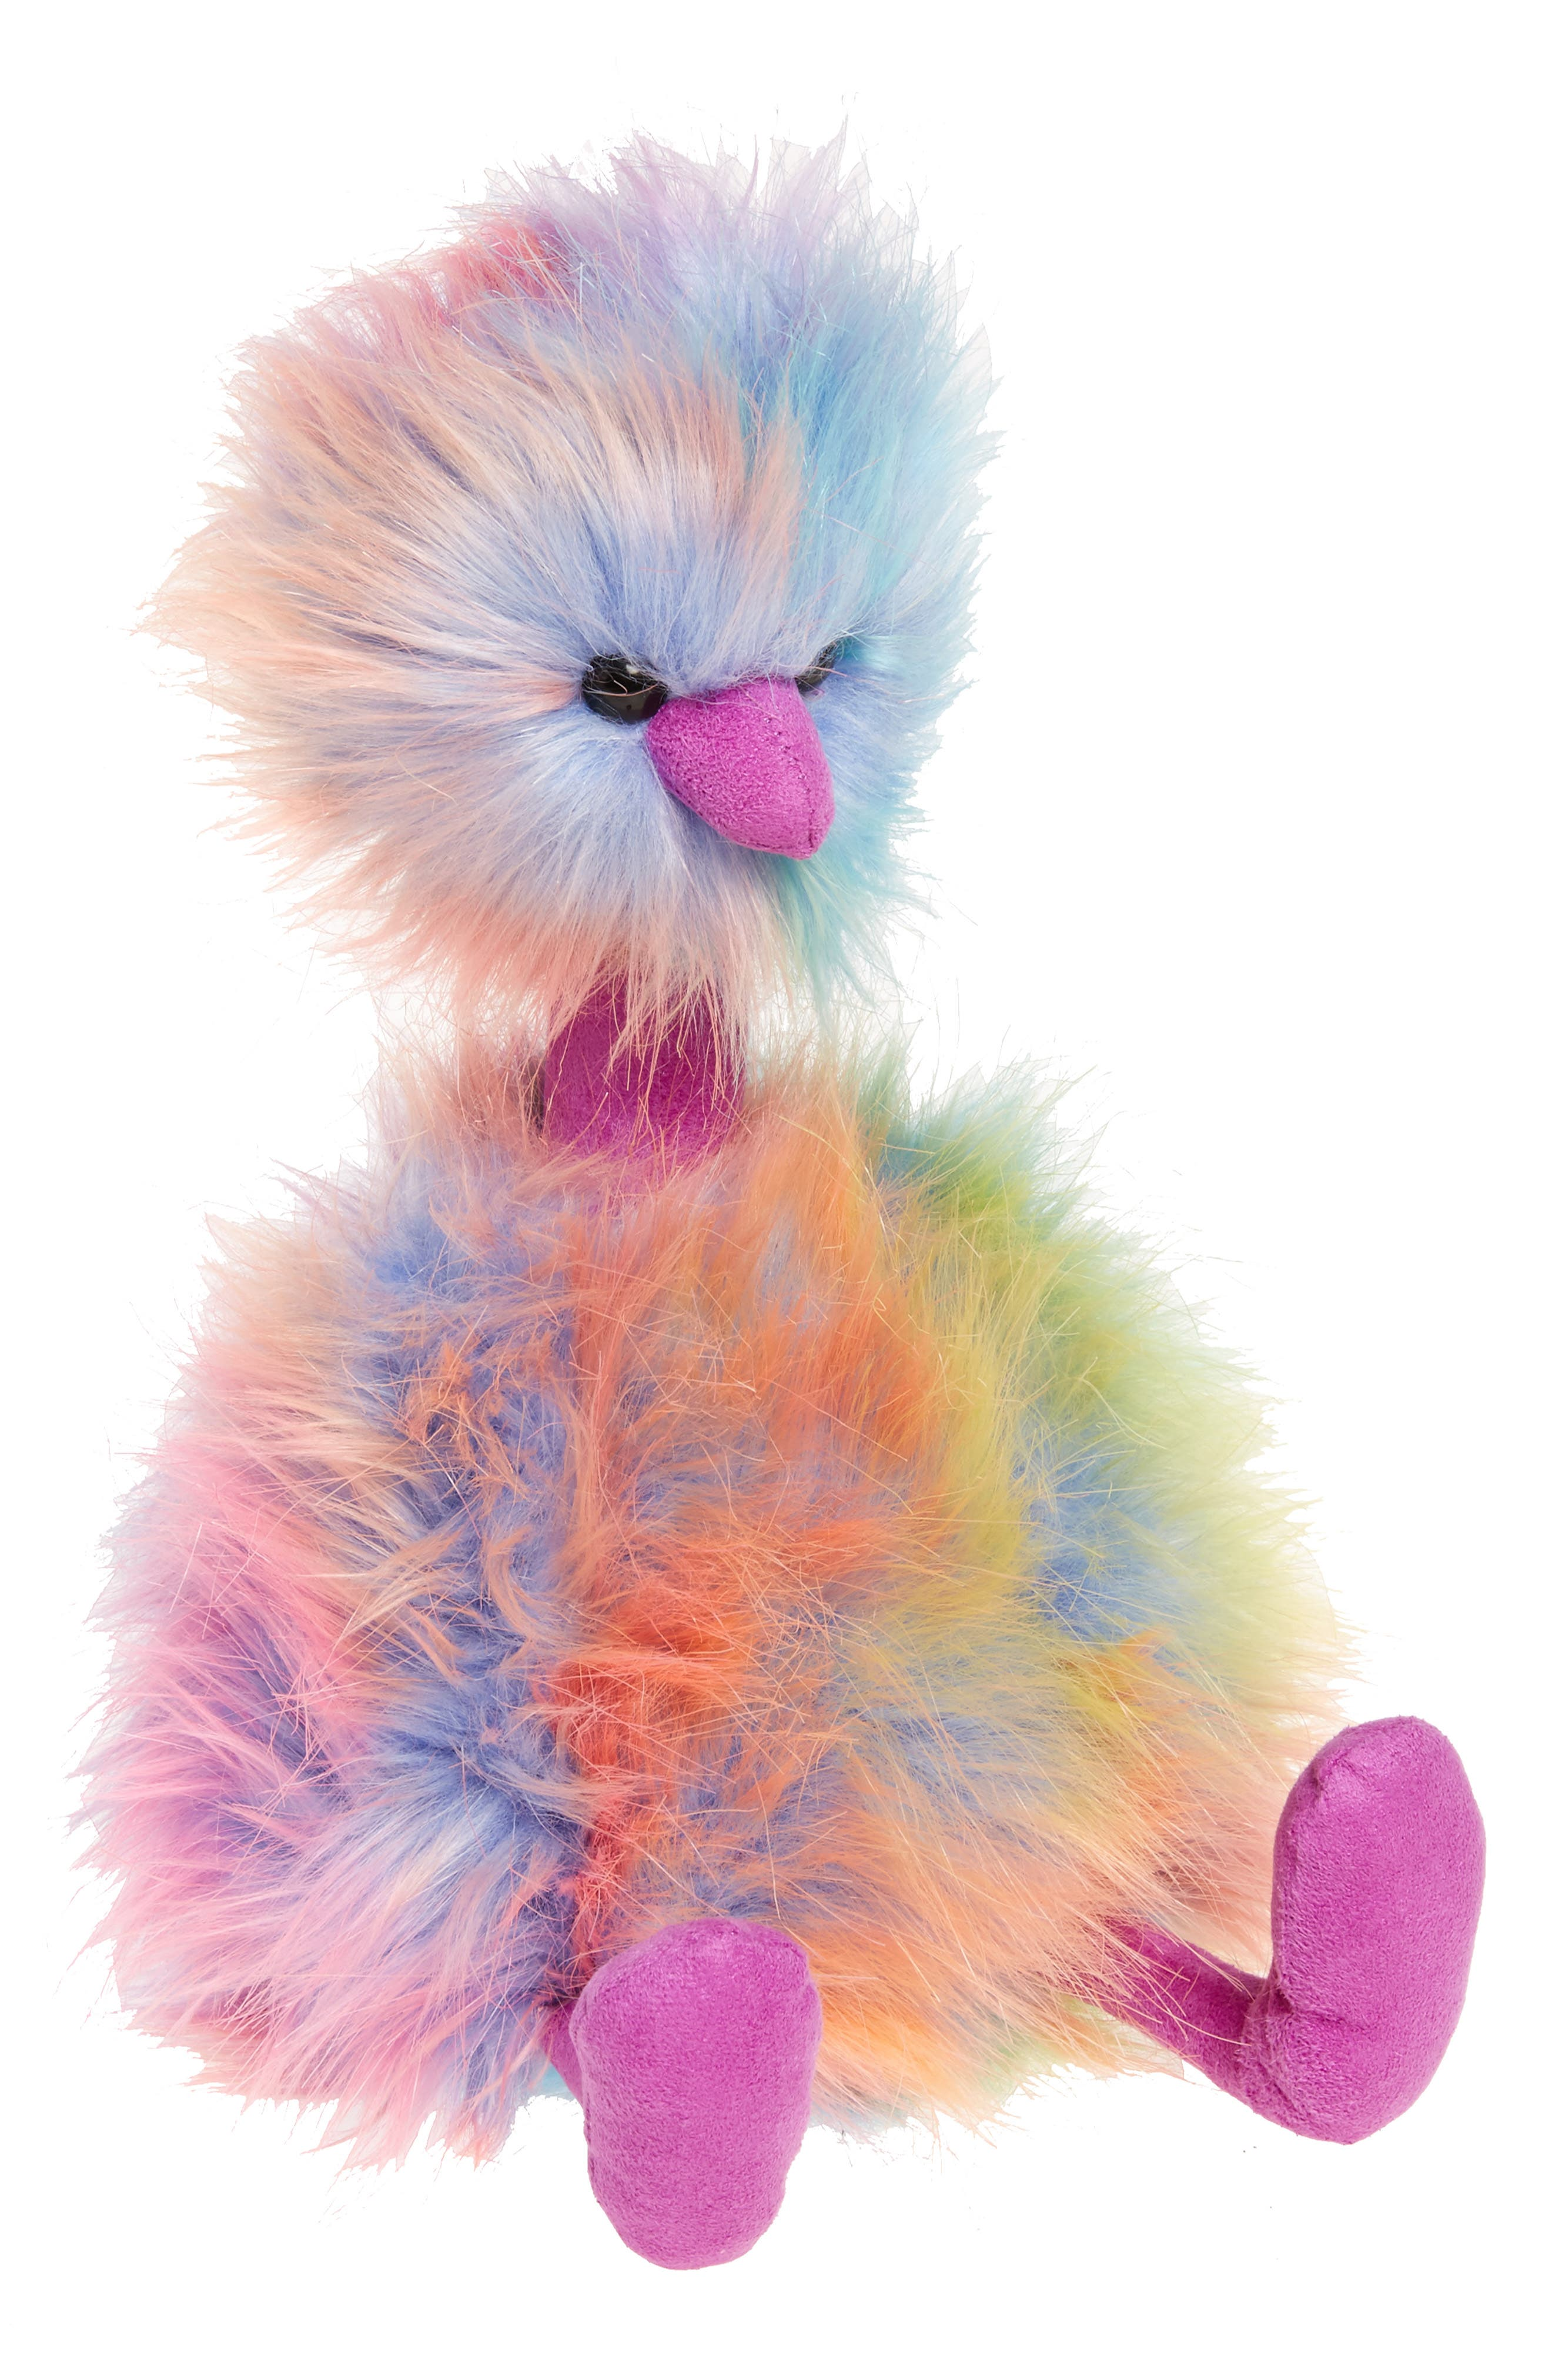 Medium Pompom Rainbow Stuffed Animal,                             Main thumbnail 1, color,                             PEACH MULTI